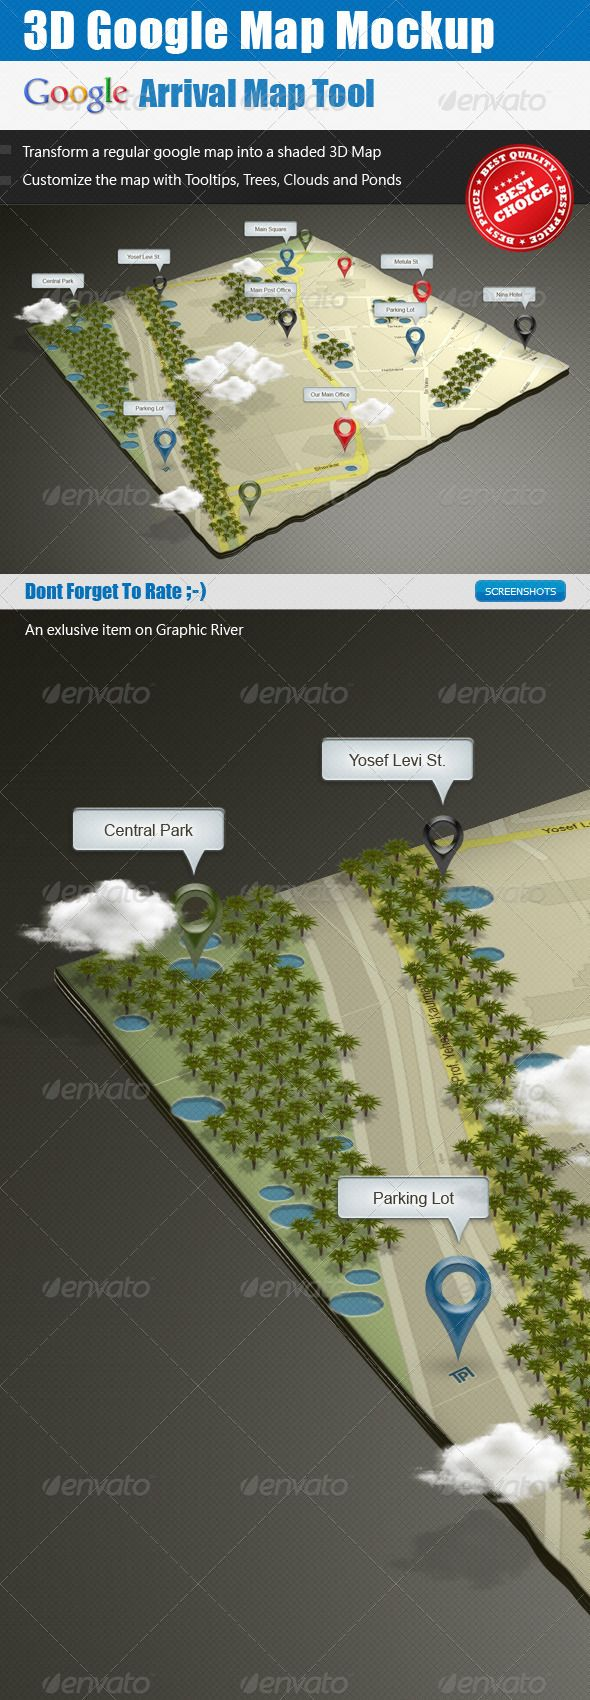 3D Google Map Mock up 195 best mapography